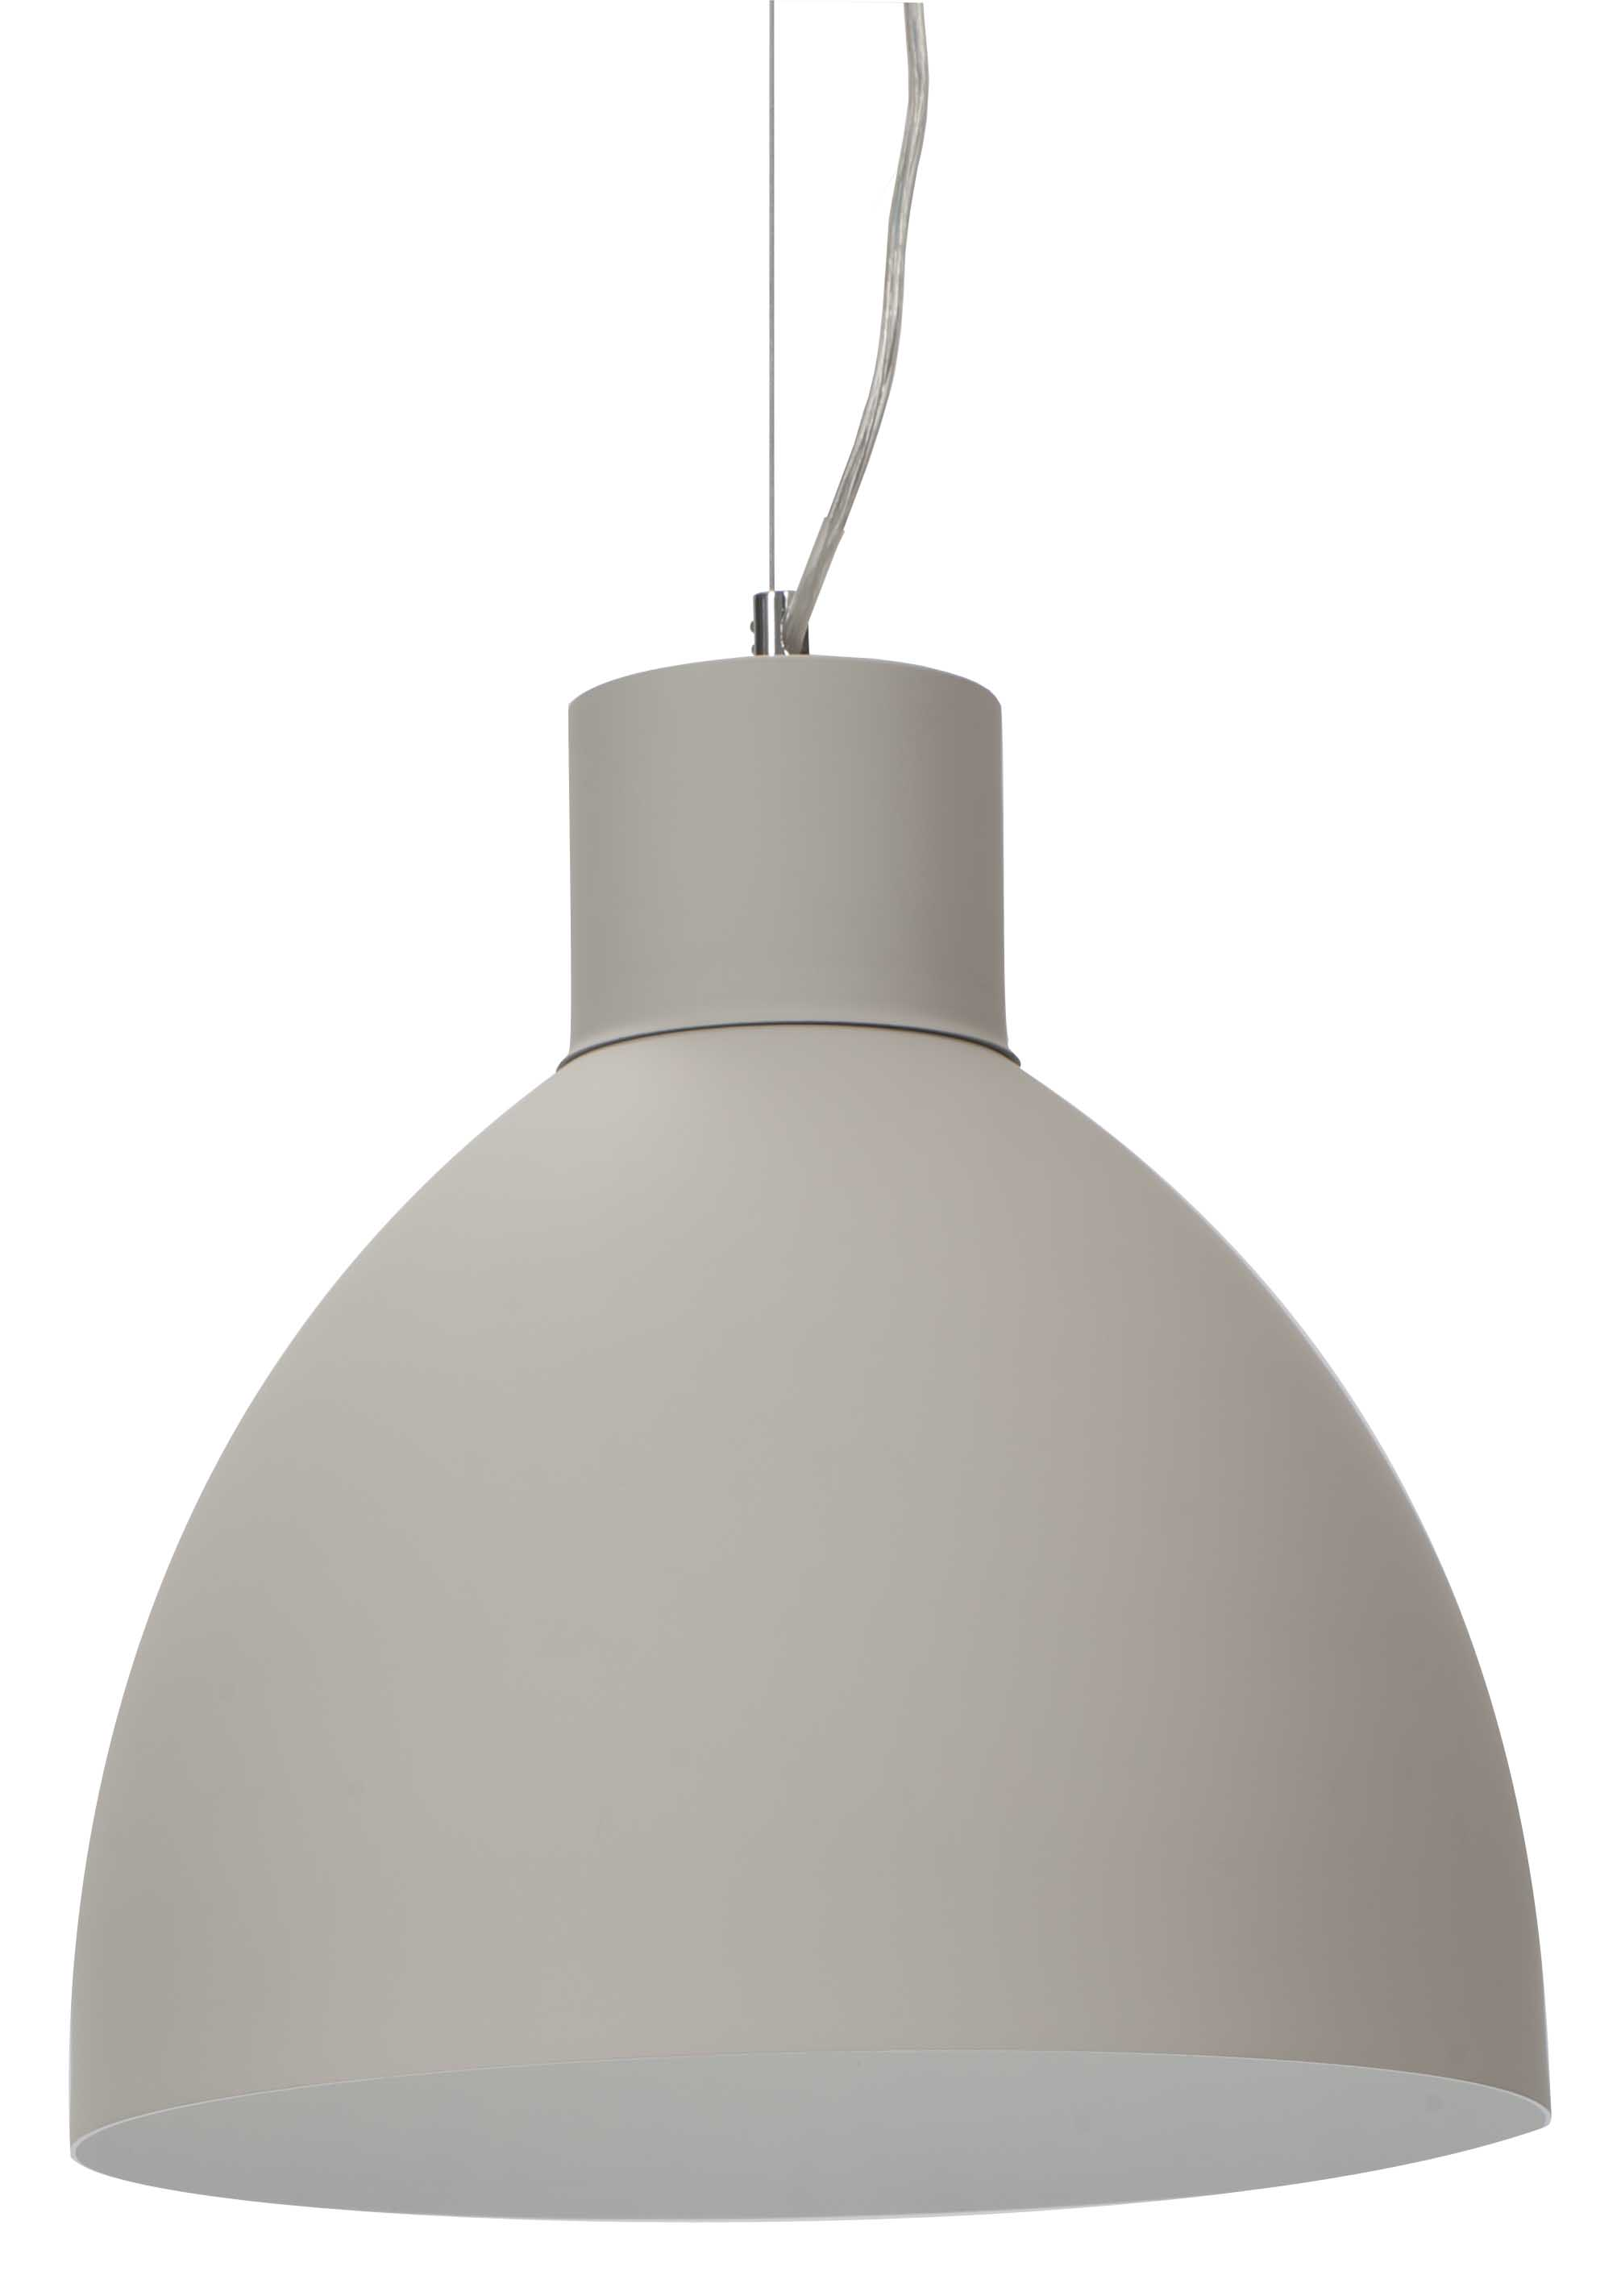 Contrast Hanging Lamp Pr Home - Long hanging light fixtures